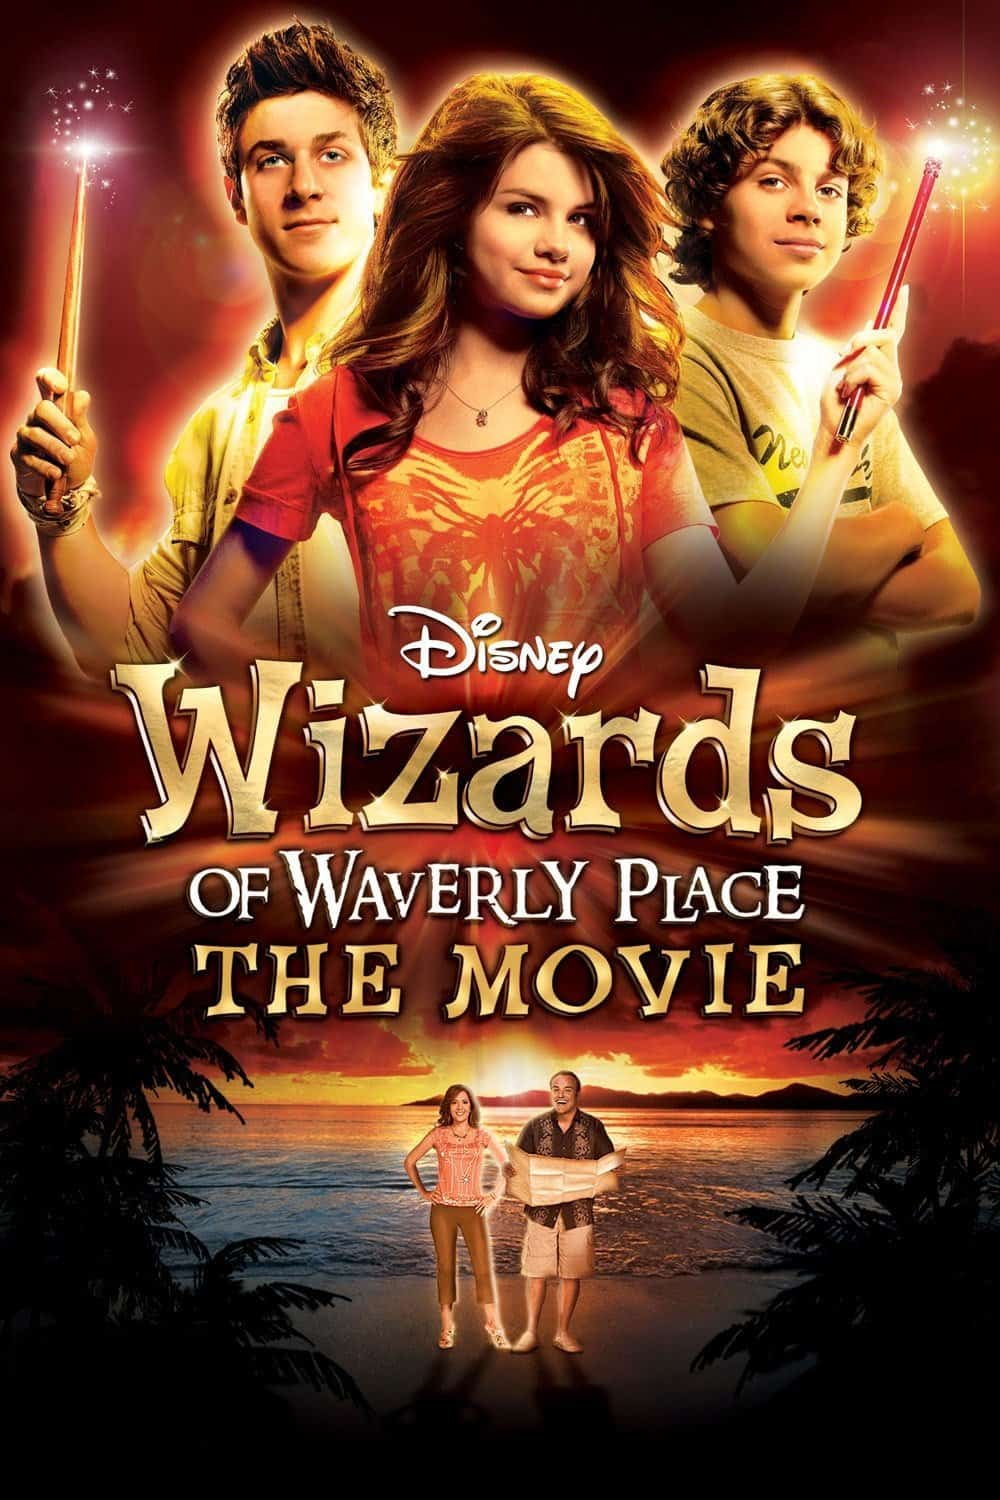 Wizards of Waverly Place: The Movie, 2009